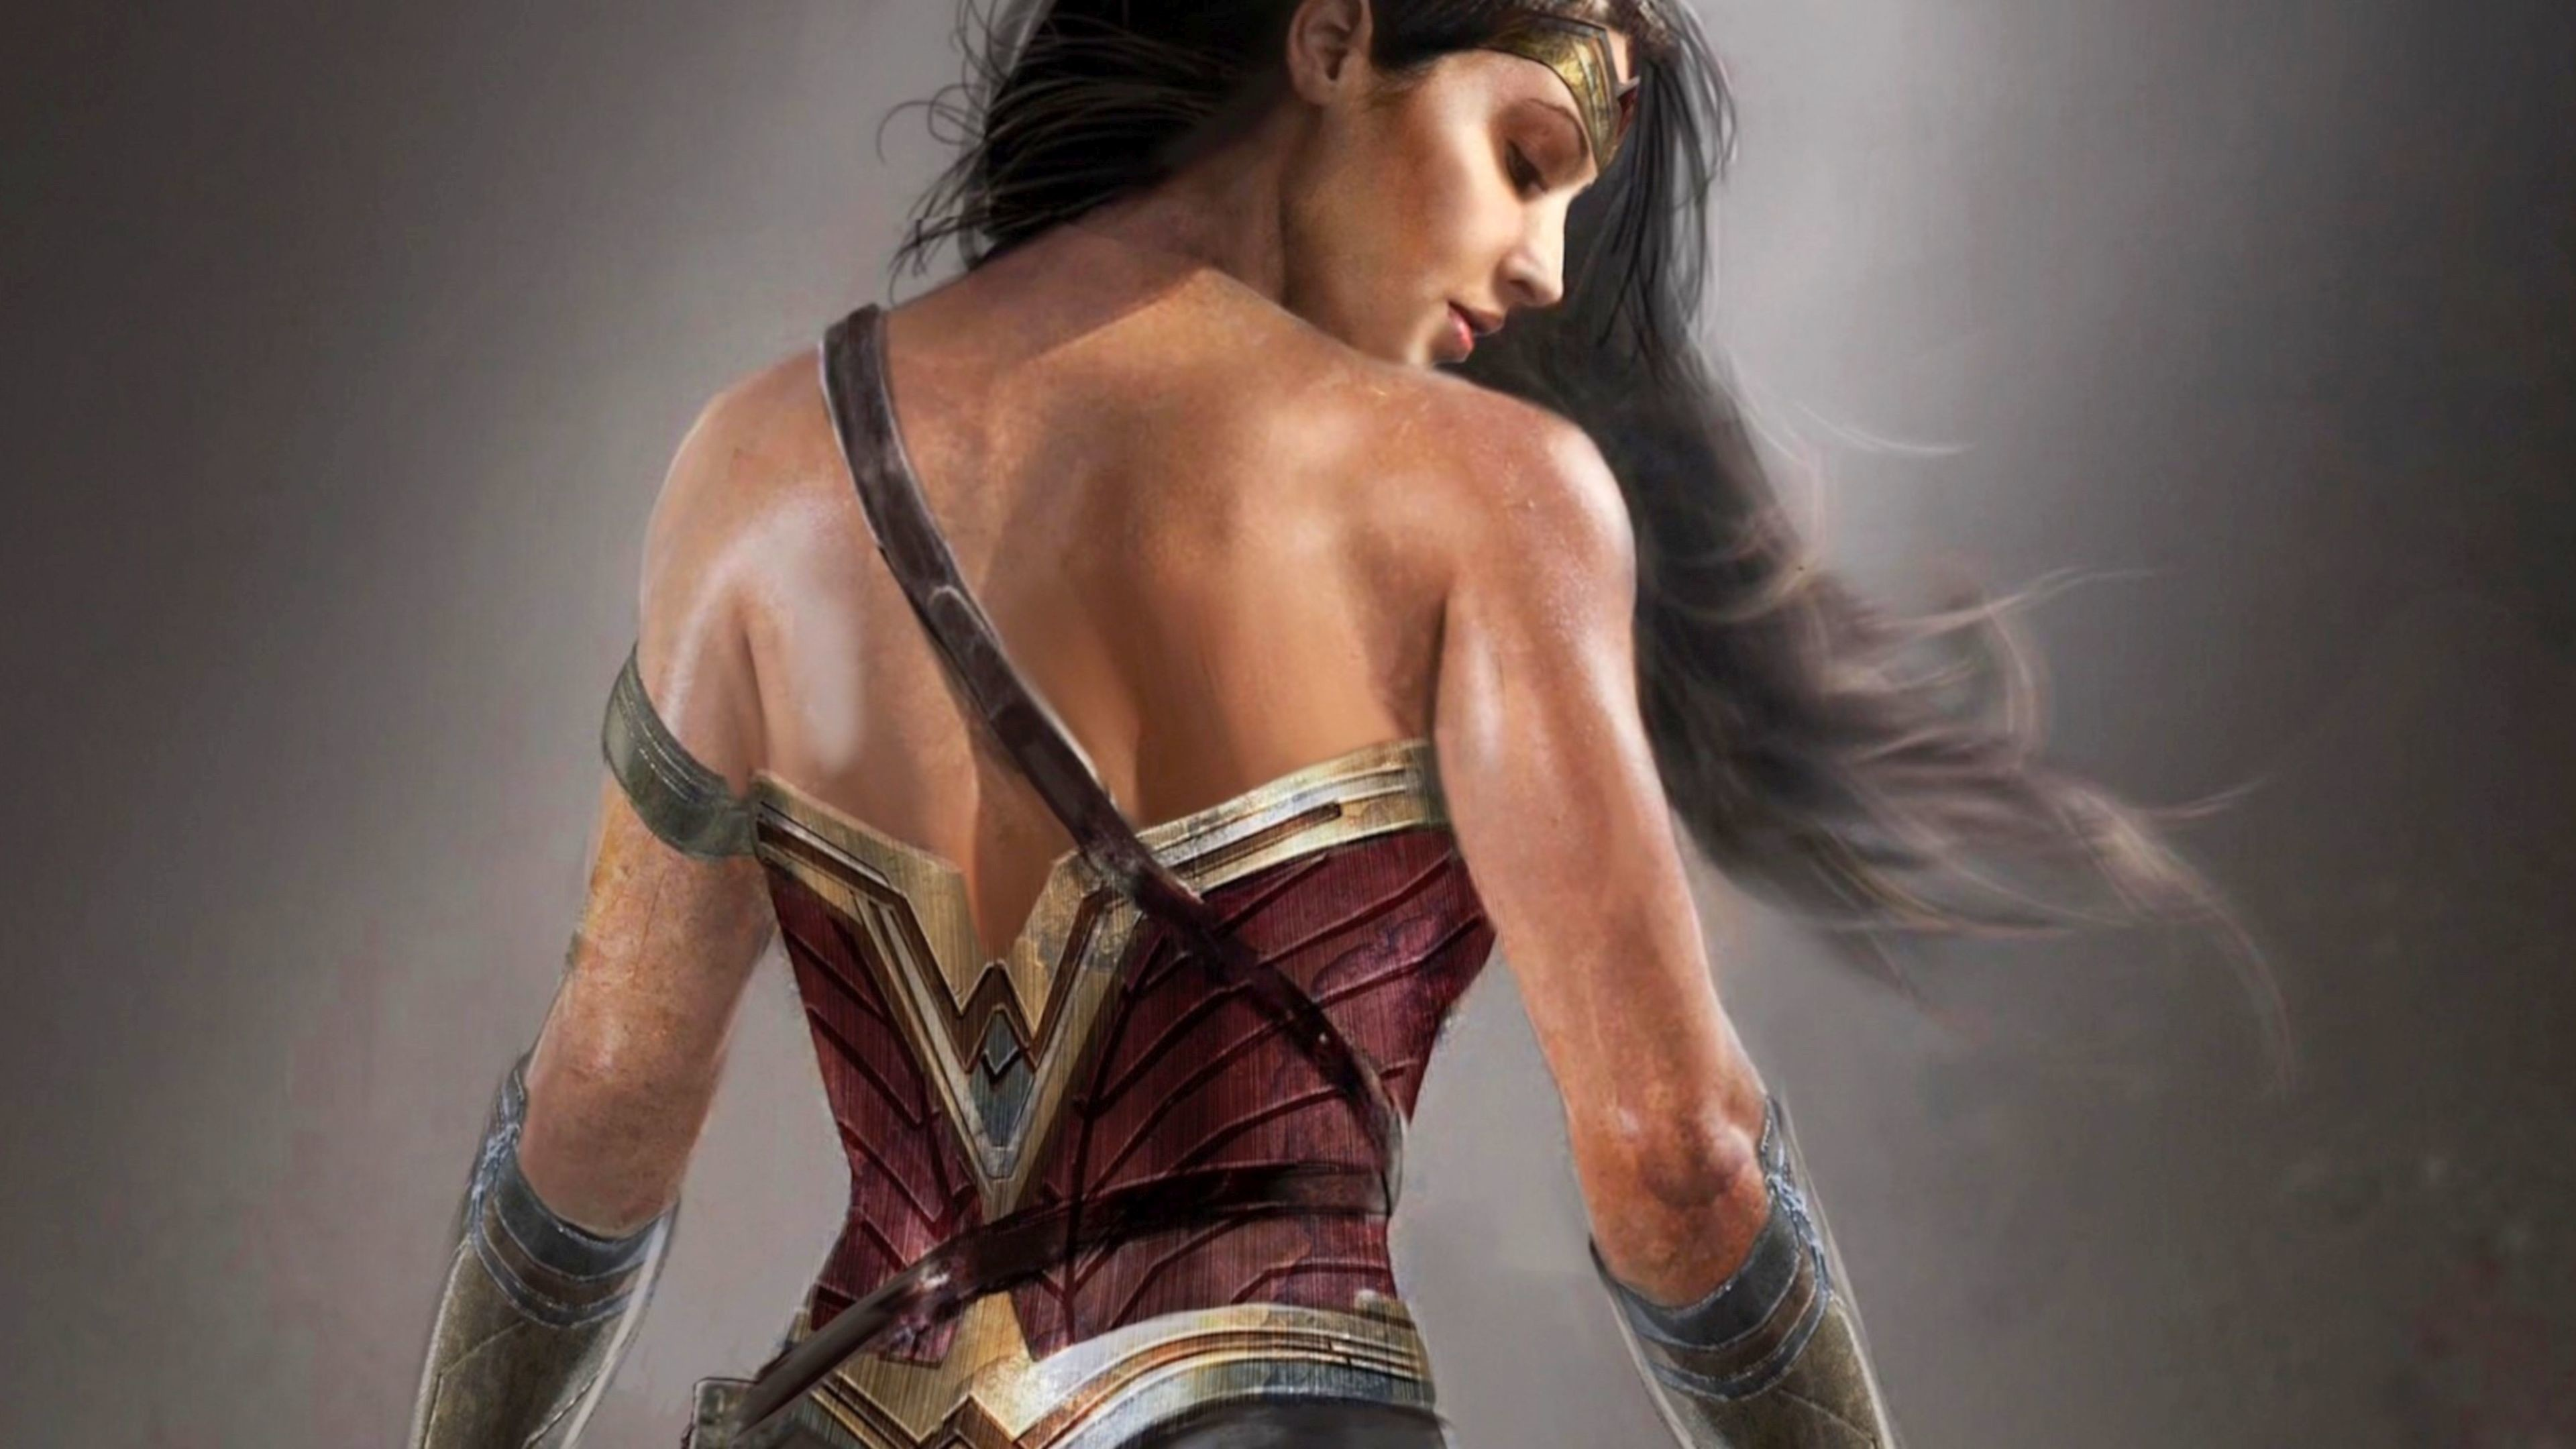 3840x2160 gal-gadot-wonder-woman-artwork-nh.jpg